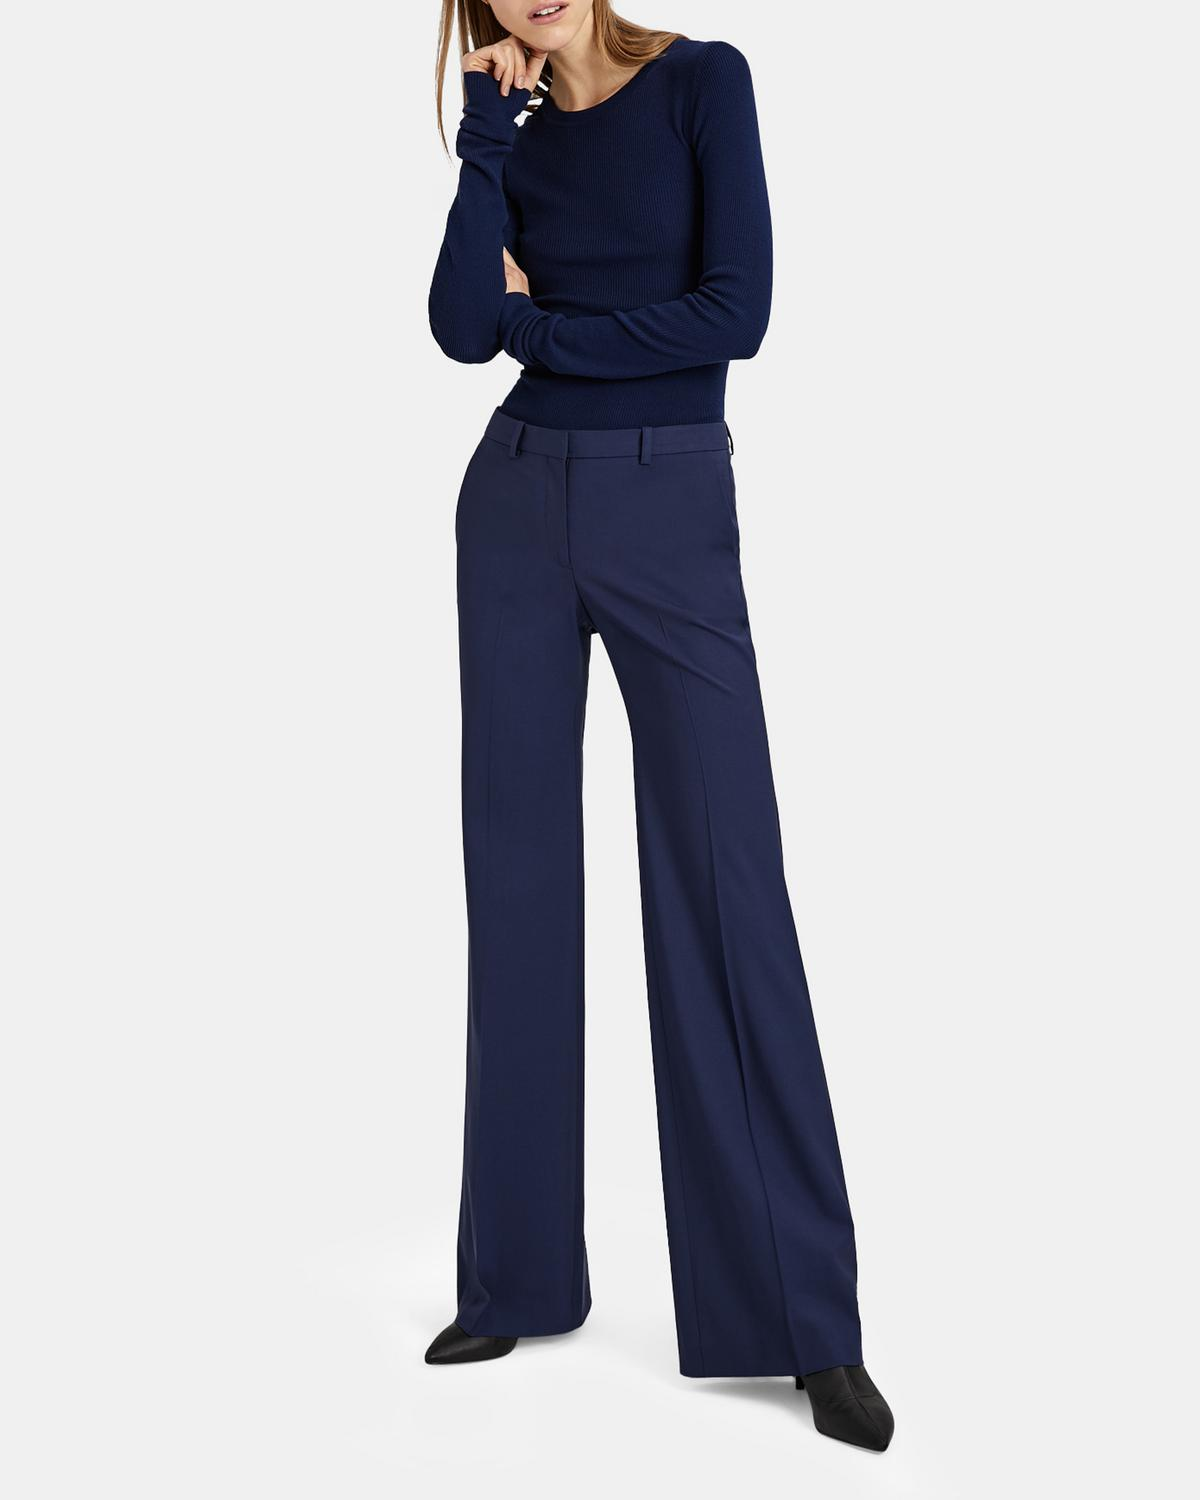 Demitria High-Rise Flared Stretch-Wool Trousers in Sea Blue from Theory